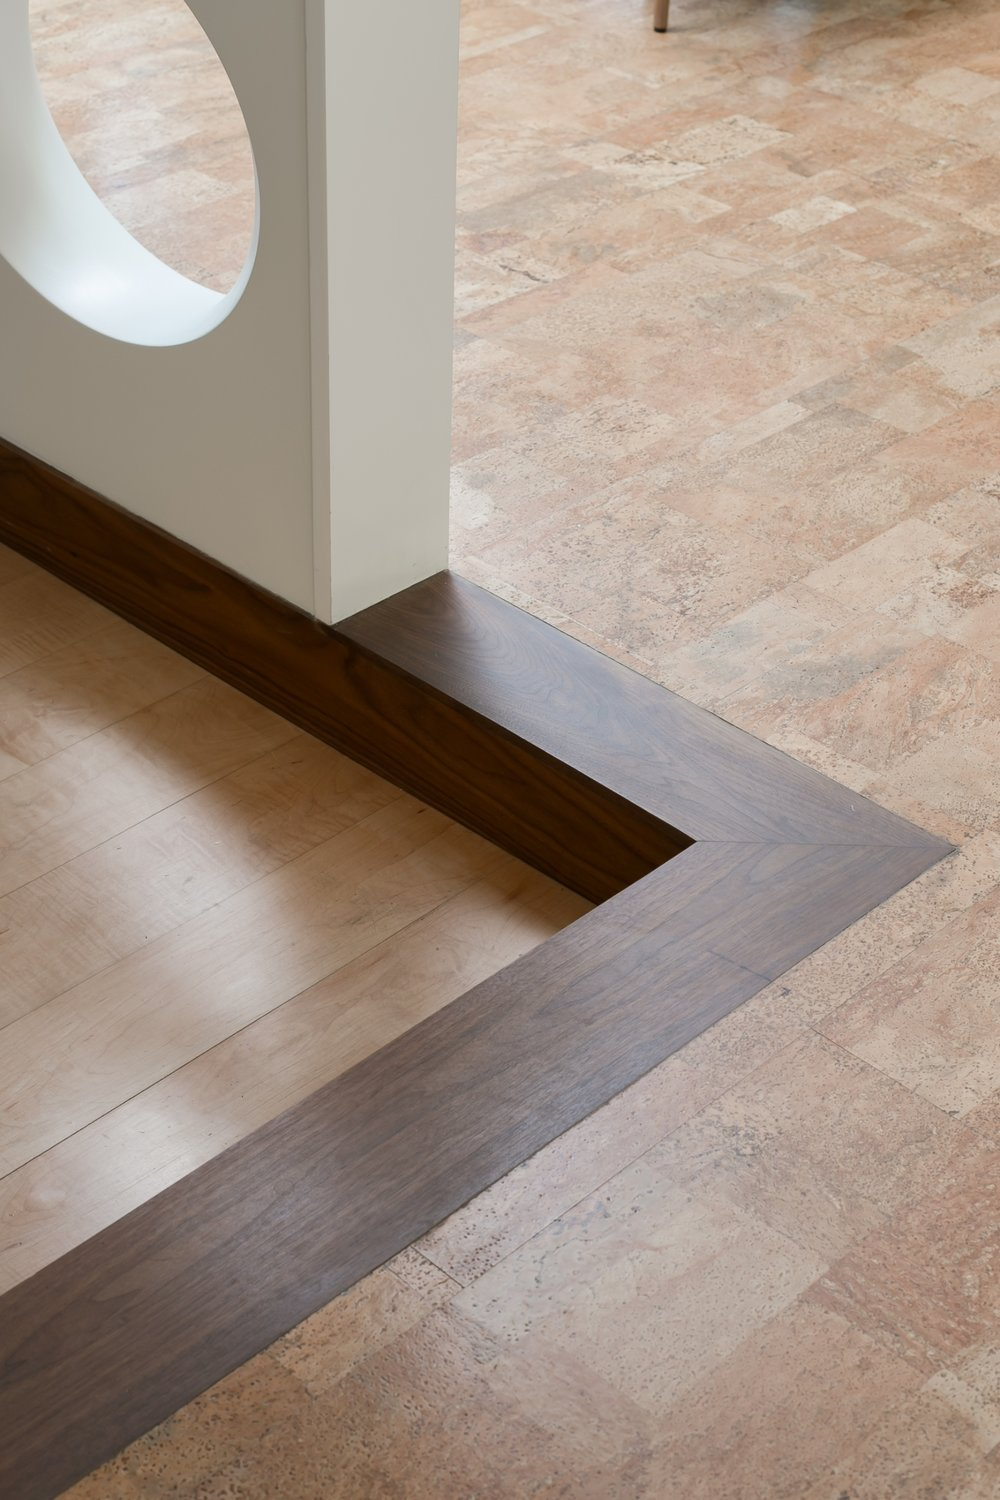 Walnut step between maple and cork floor for this mid-century modern remodel